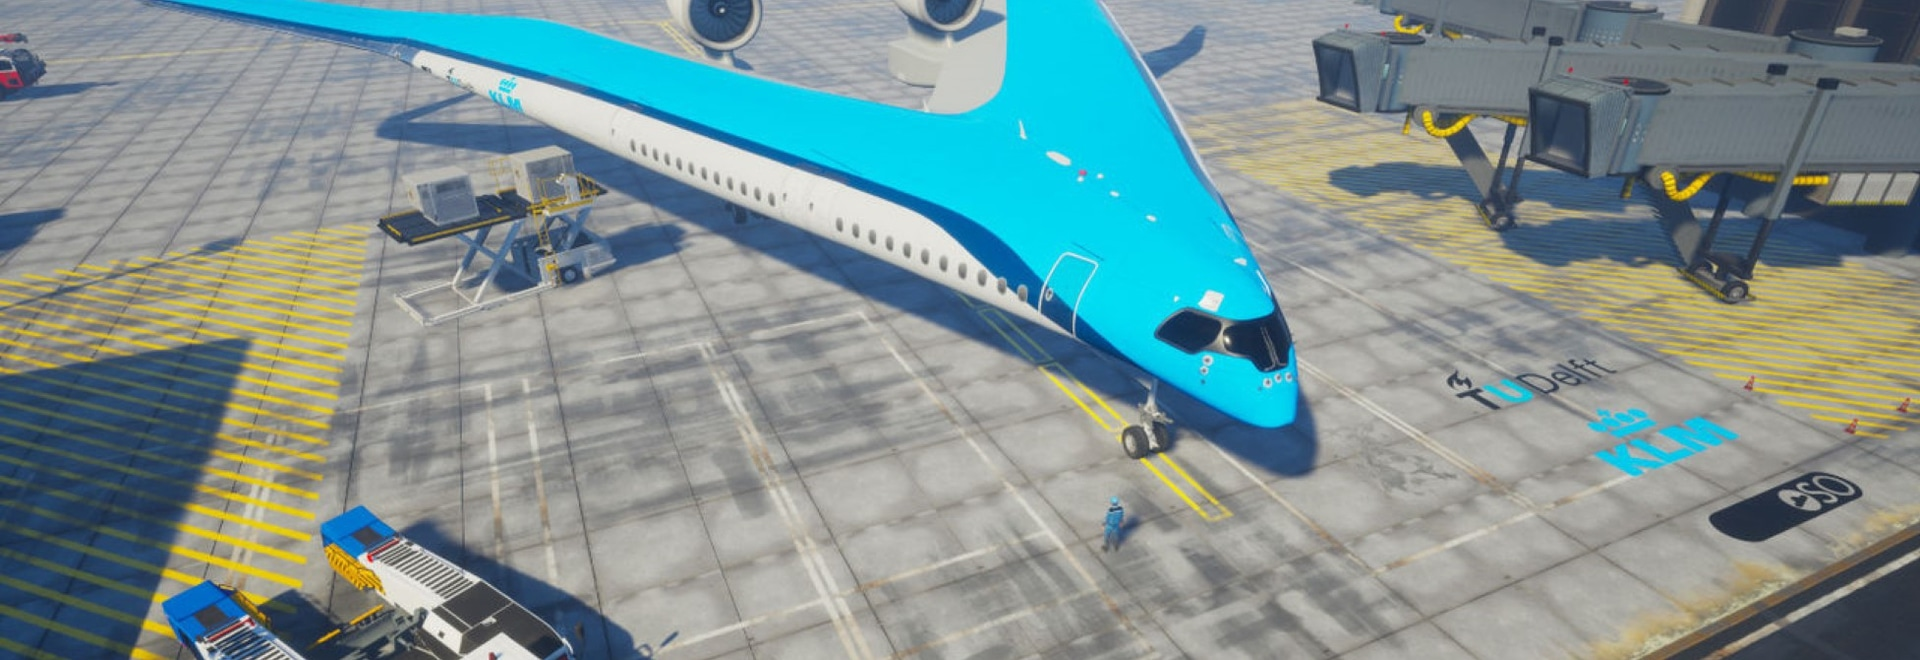 KLM partners with TU Delft for Flying-V aircraft concept